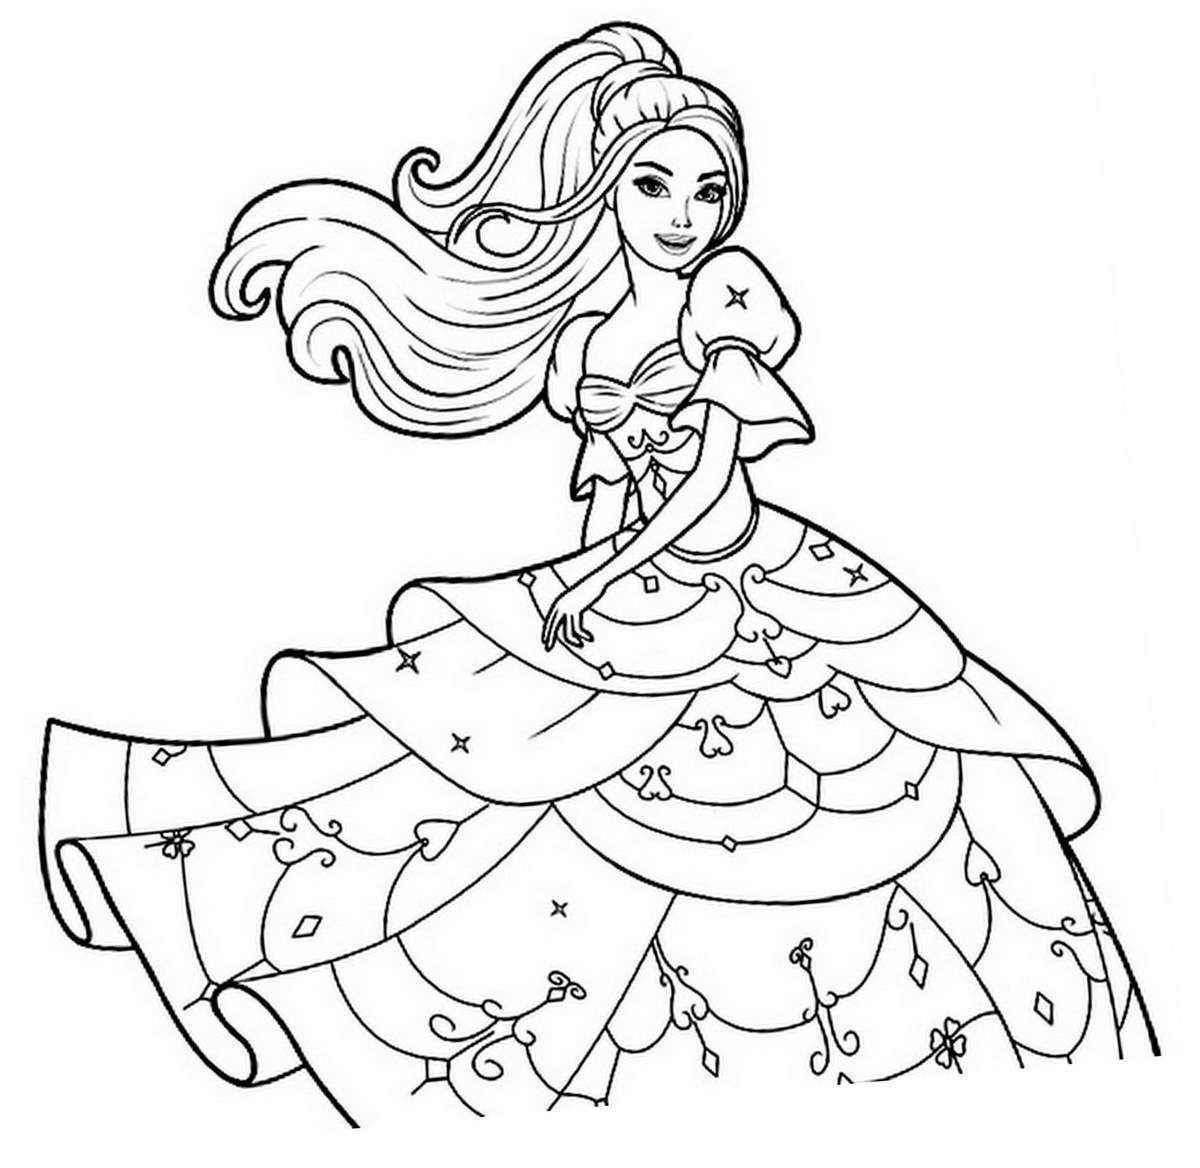 Coloriages princesses imprimer coloriage pinterest - Dessin de robe de princesse ...